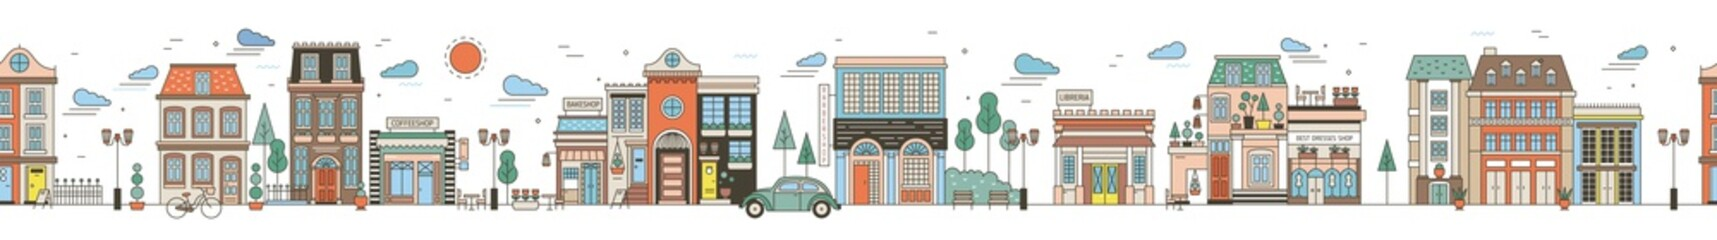 Fototapete - Seamless horizontal urban landscape with city street. Cityscape with beautiful buildings, residential houses, shops, park, driving car. Modern colorful vector illustration in line art style.